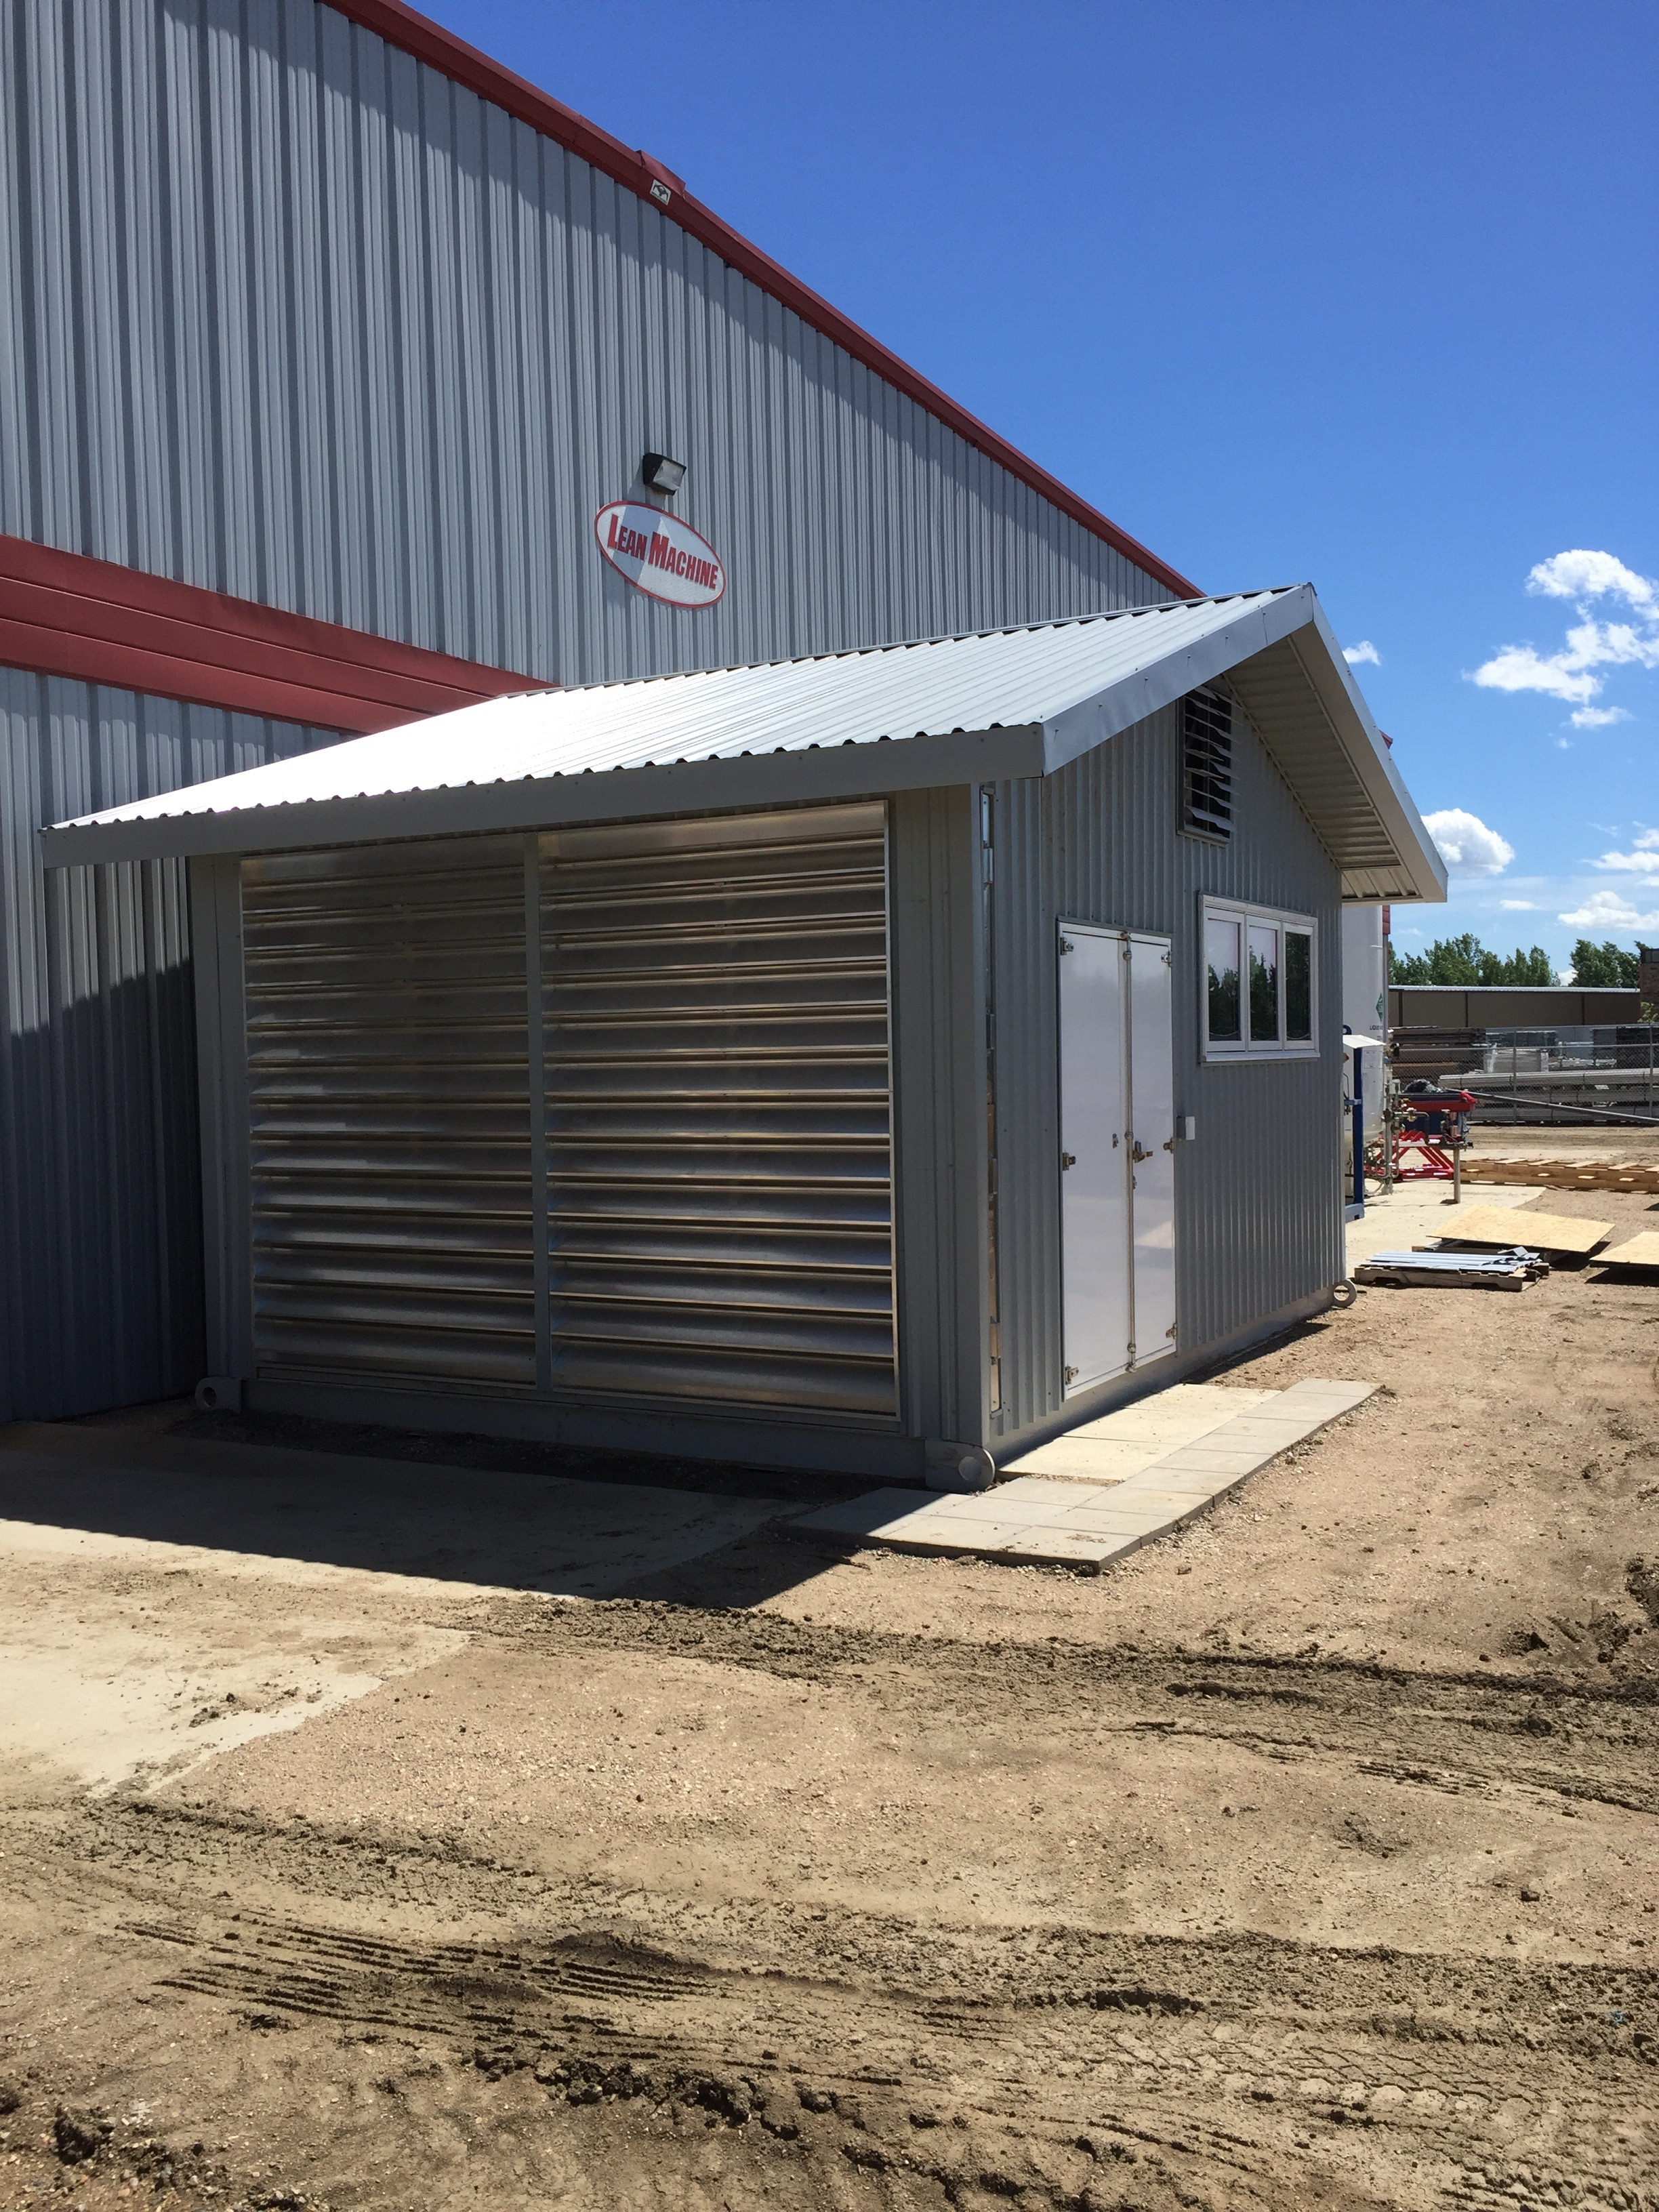 The north side of the structure is the intake and has louvers to keep driving rain or snow out.  The north side intake means prevailing winds help to increase airflow.